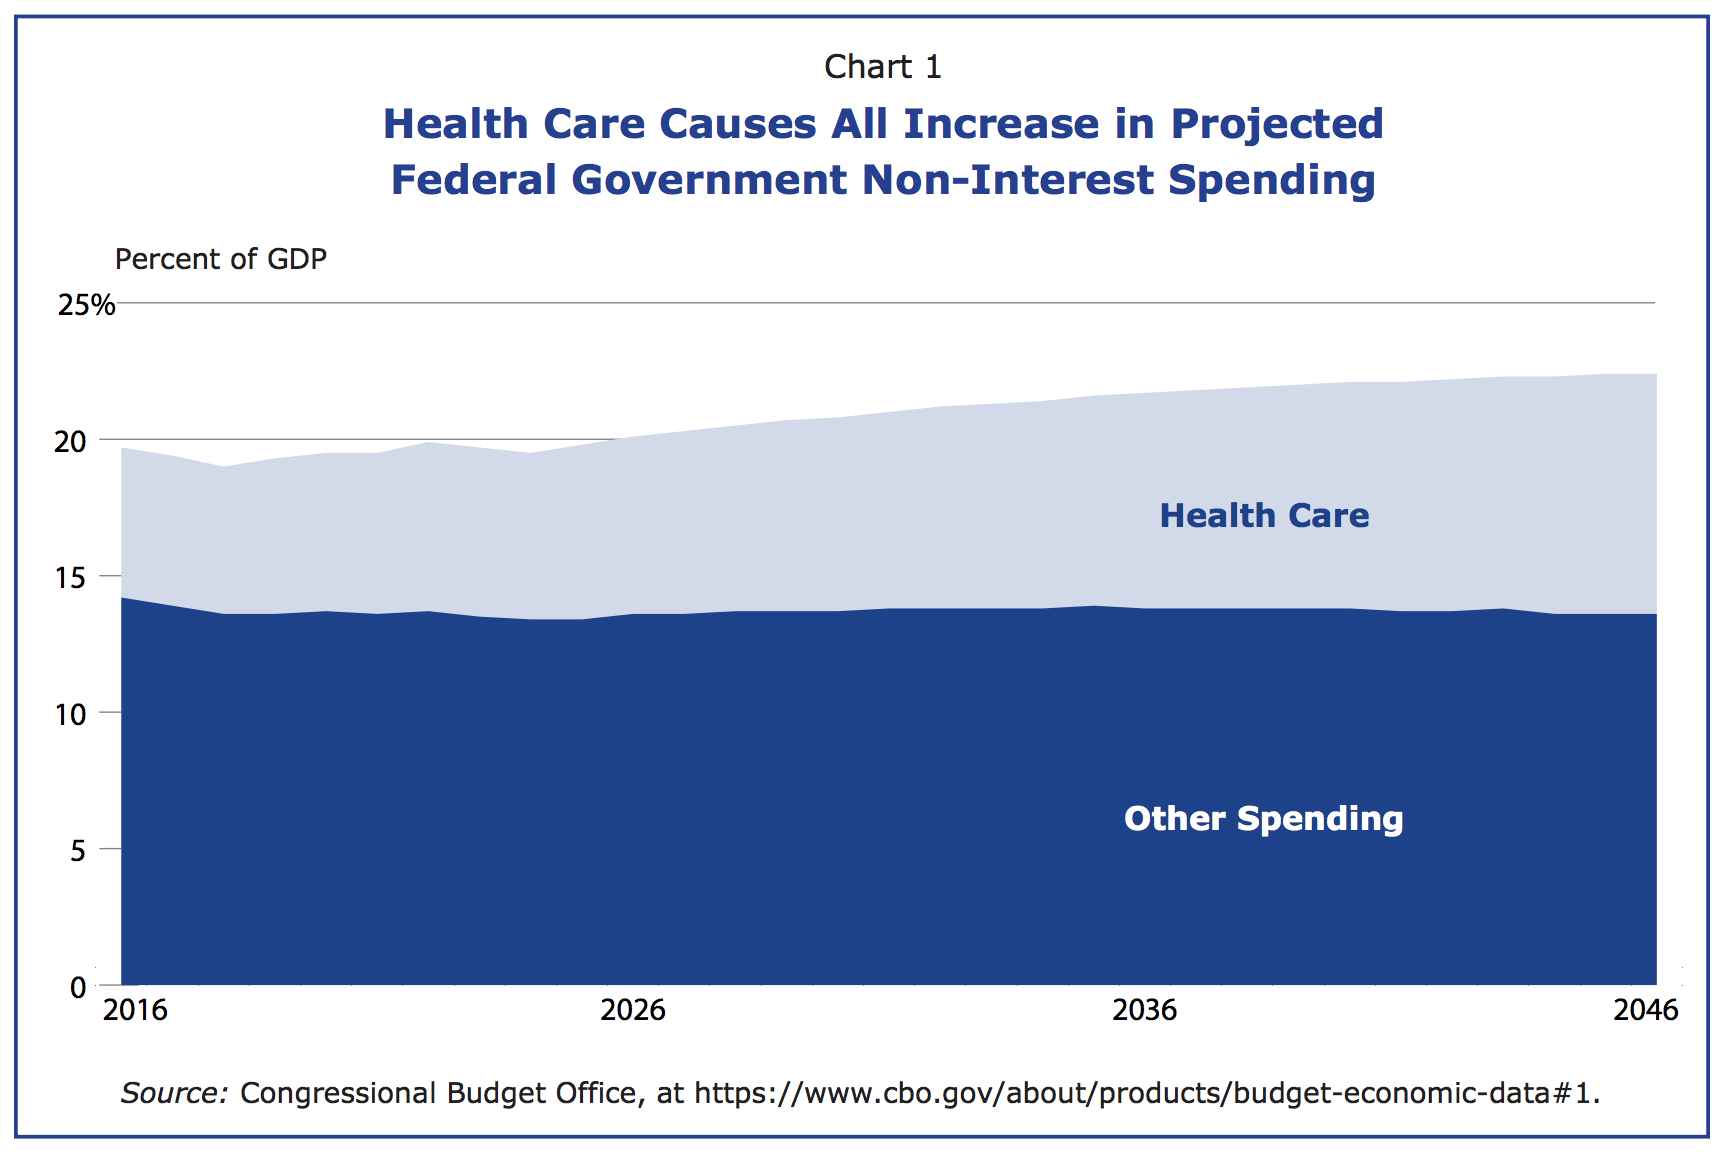 Health Care causes all increase in projected federal government non-interest spending